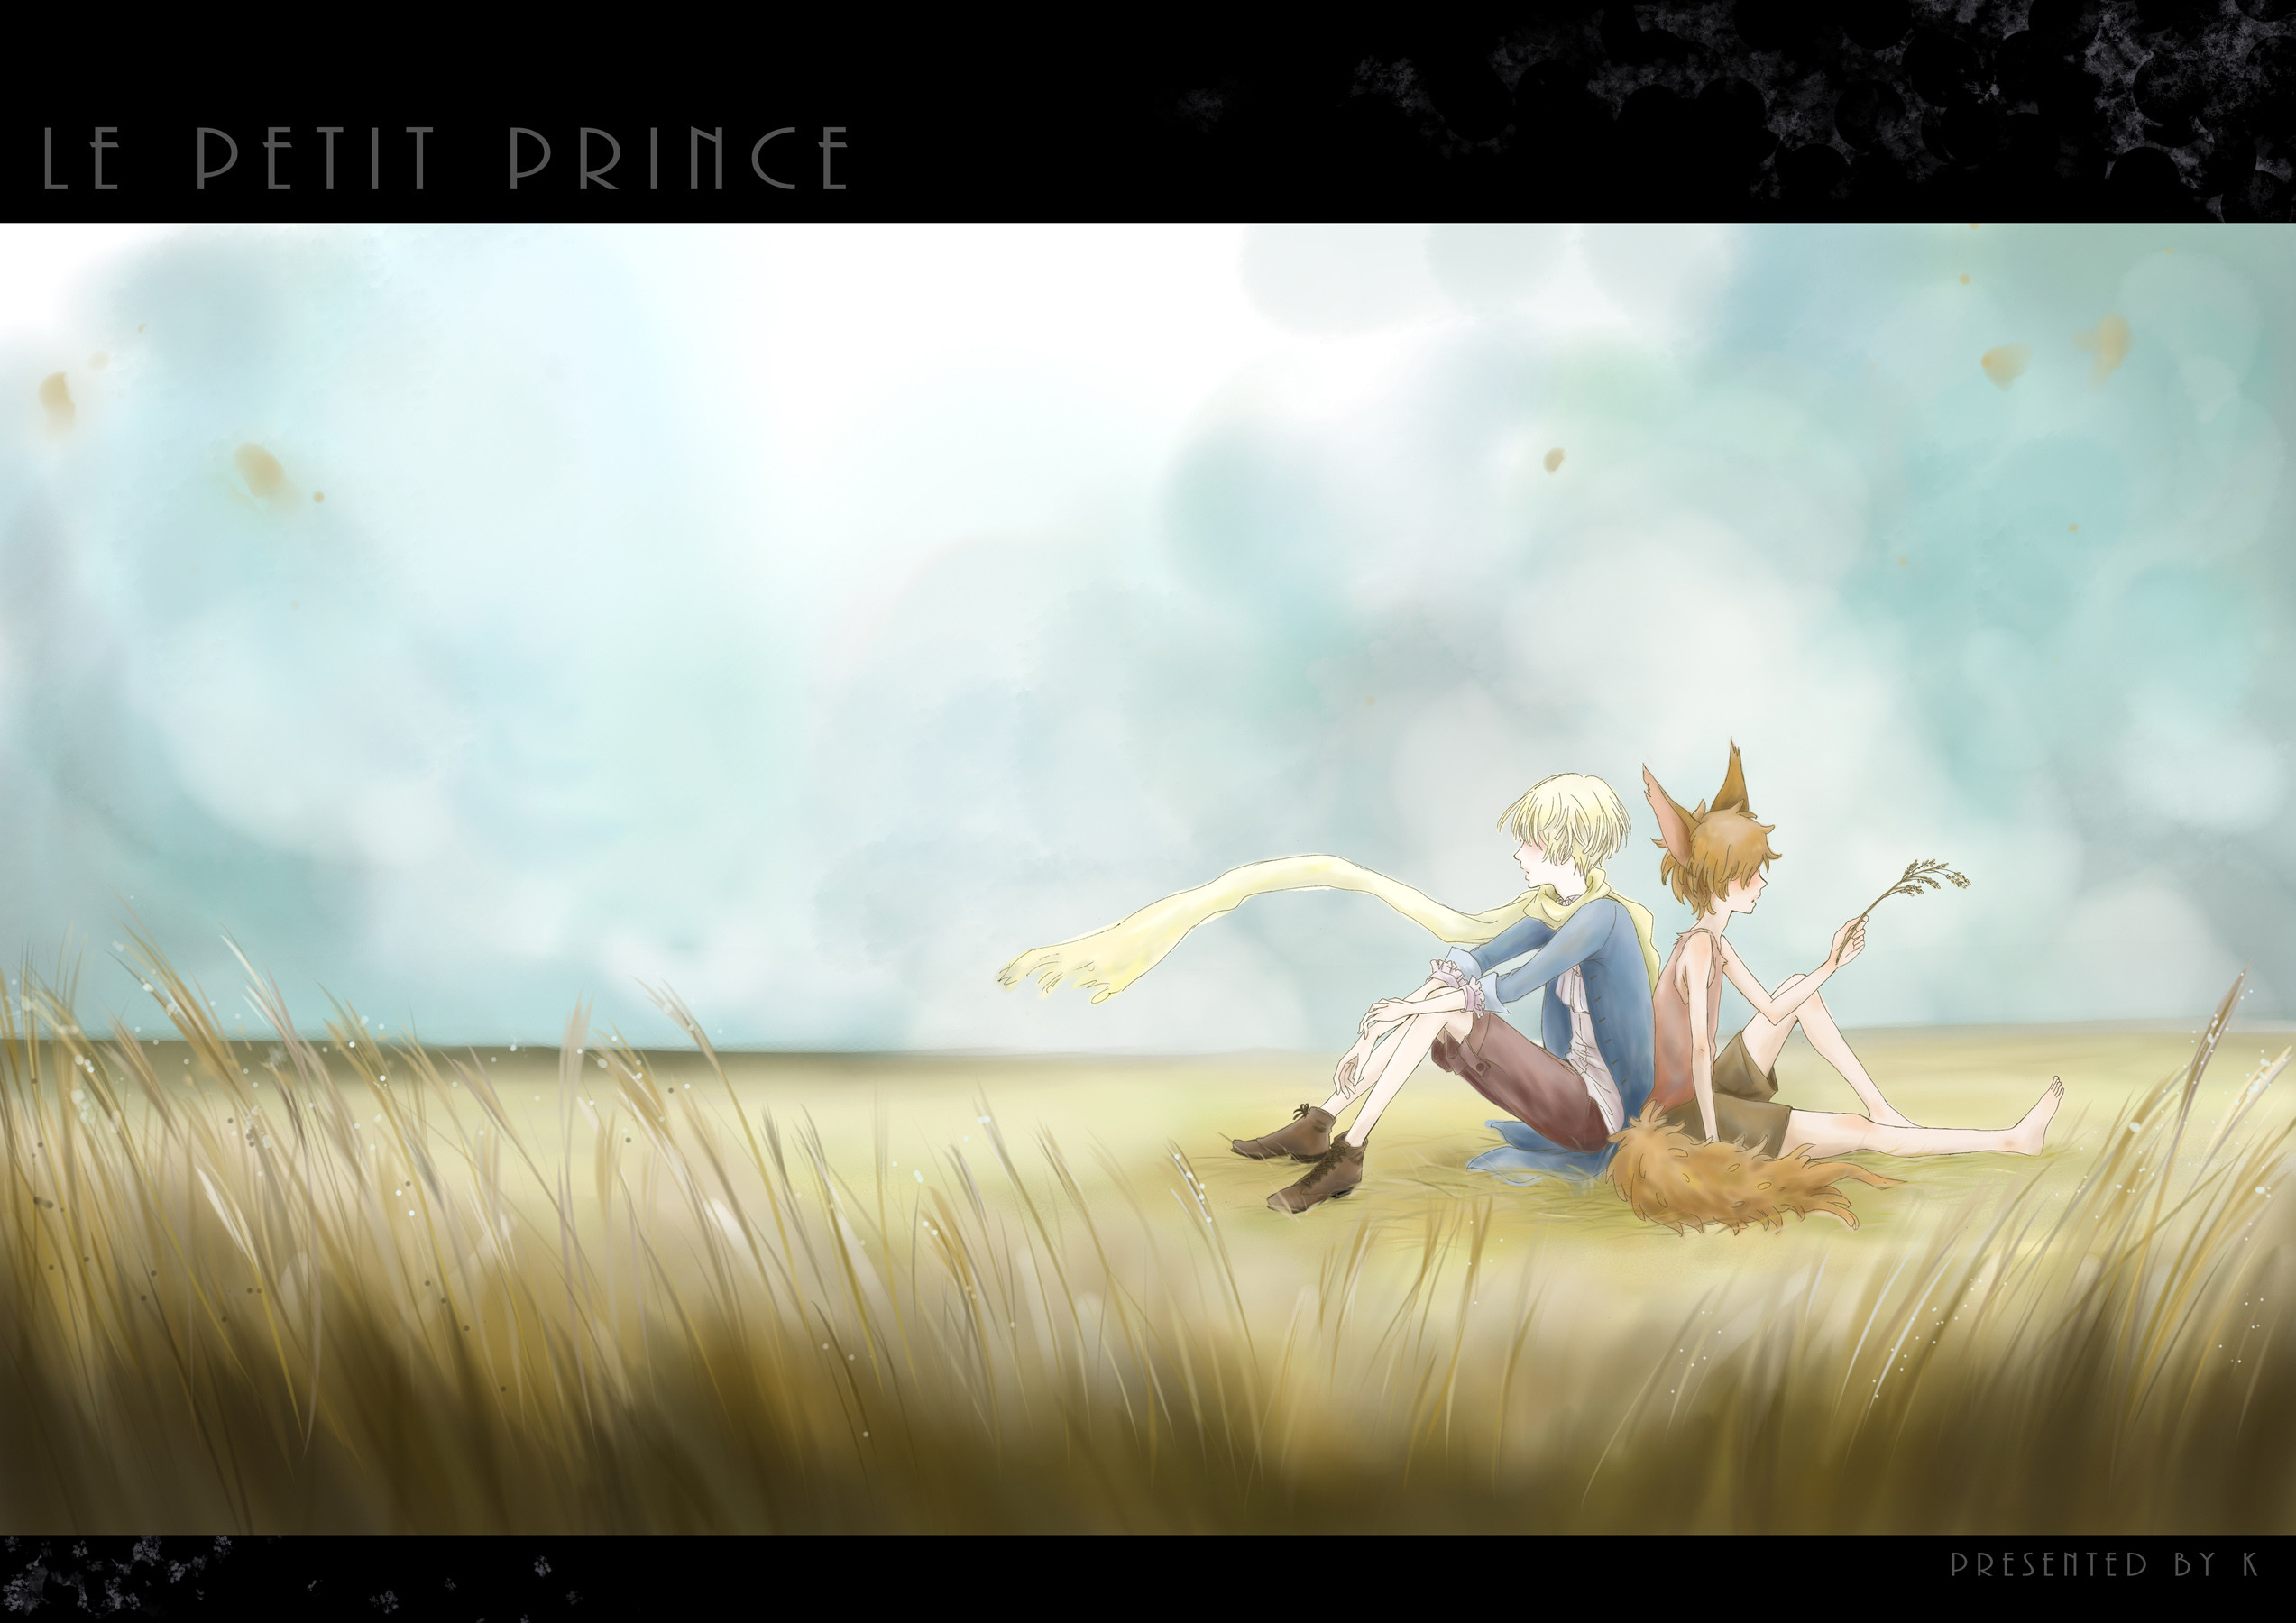 The Little Prince download The Little Prince image